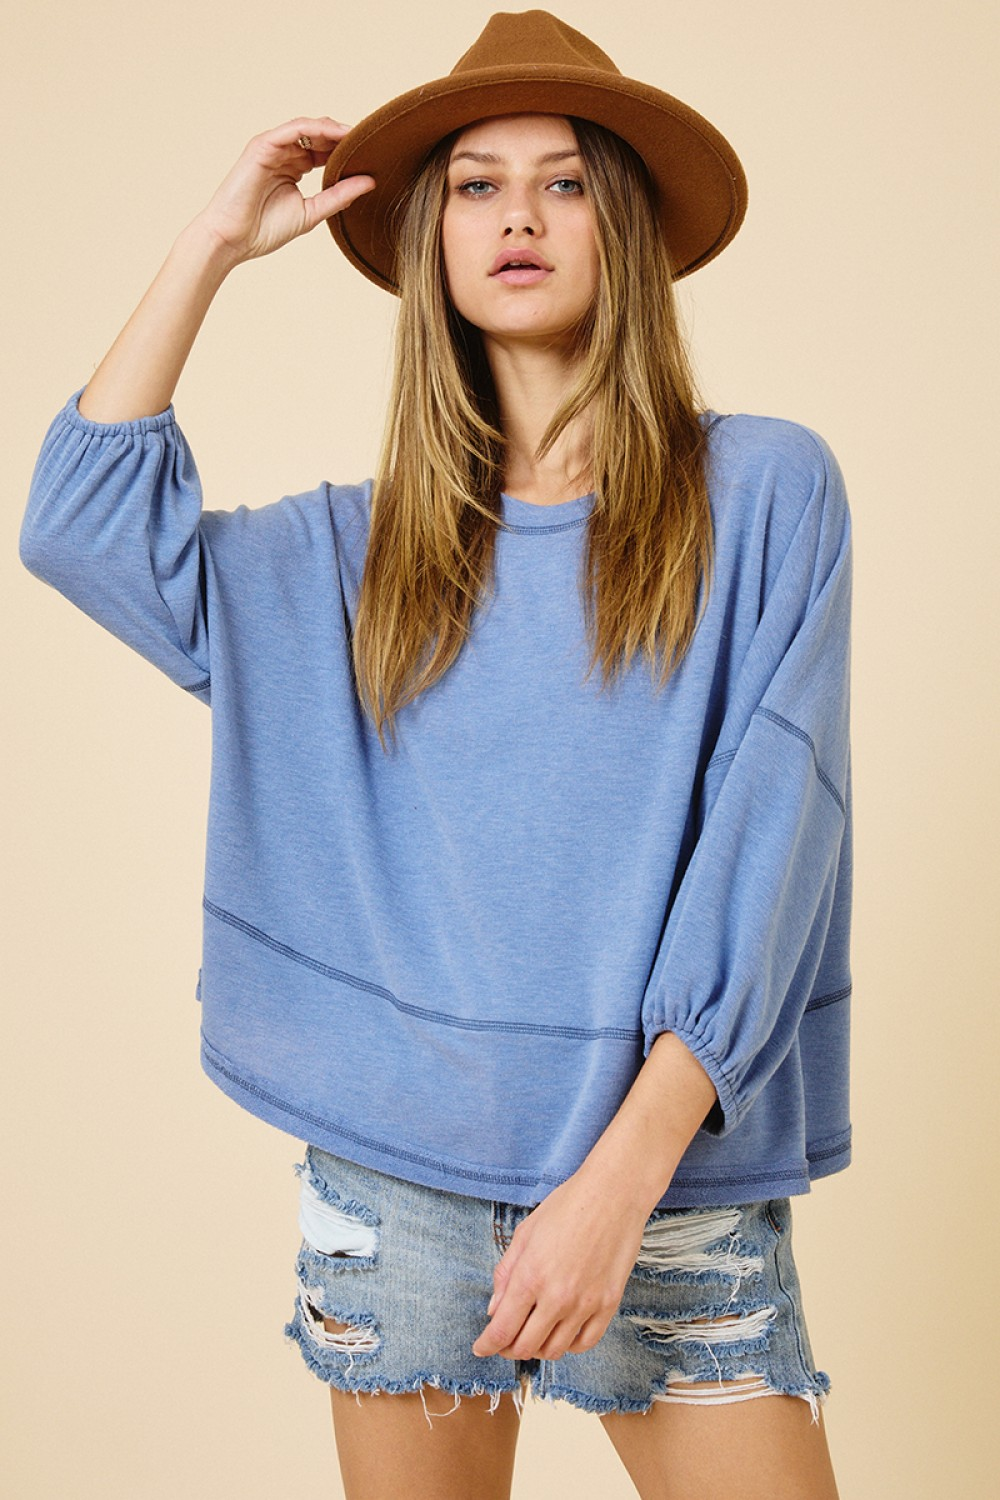 TJ10562<br/>Reverse Stitched Casual Top